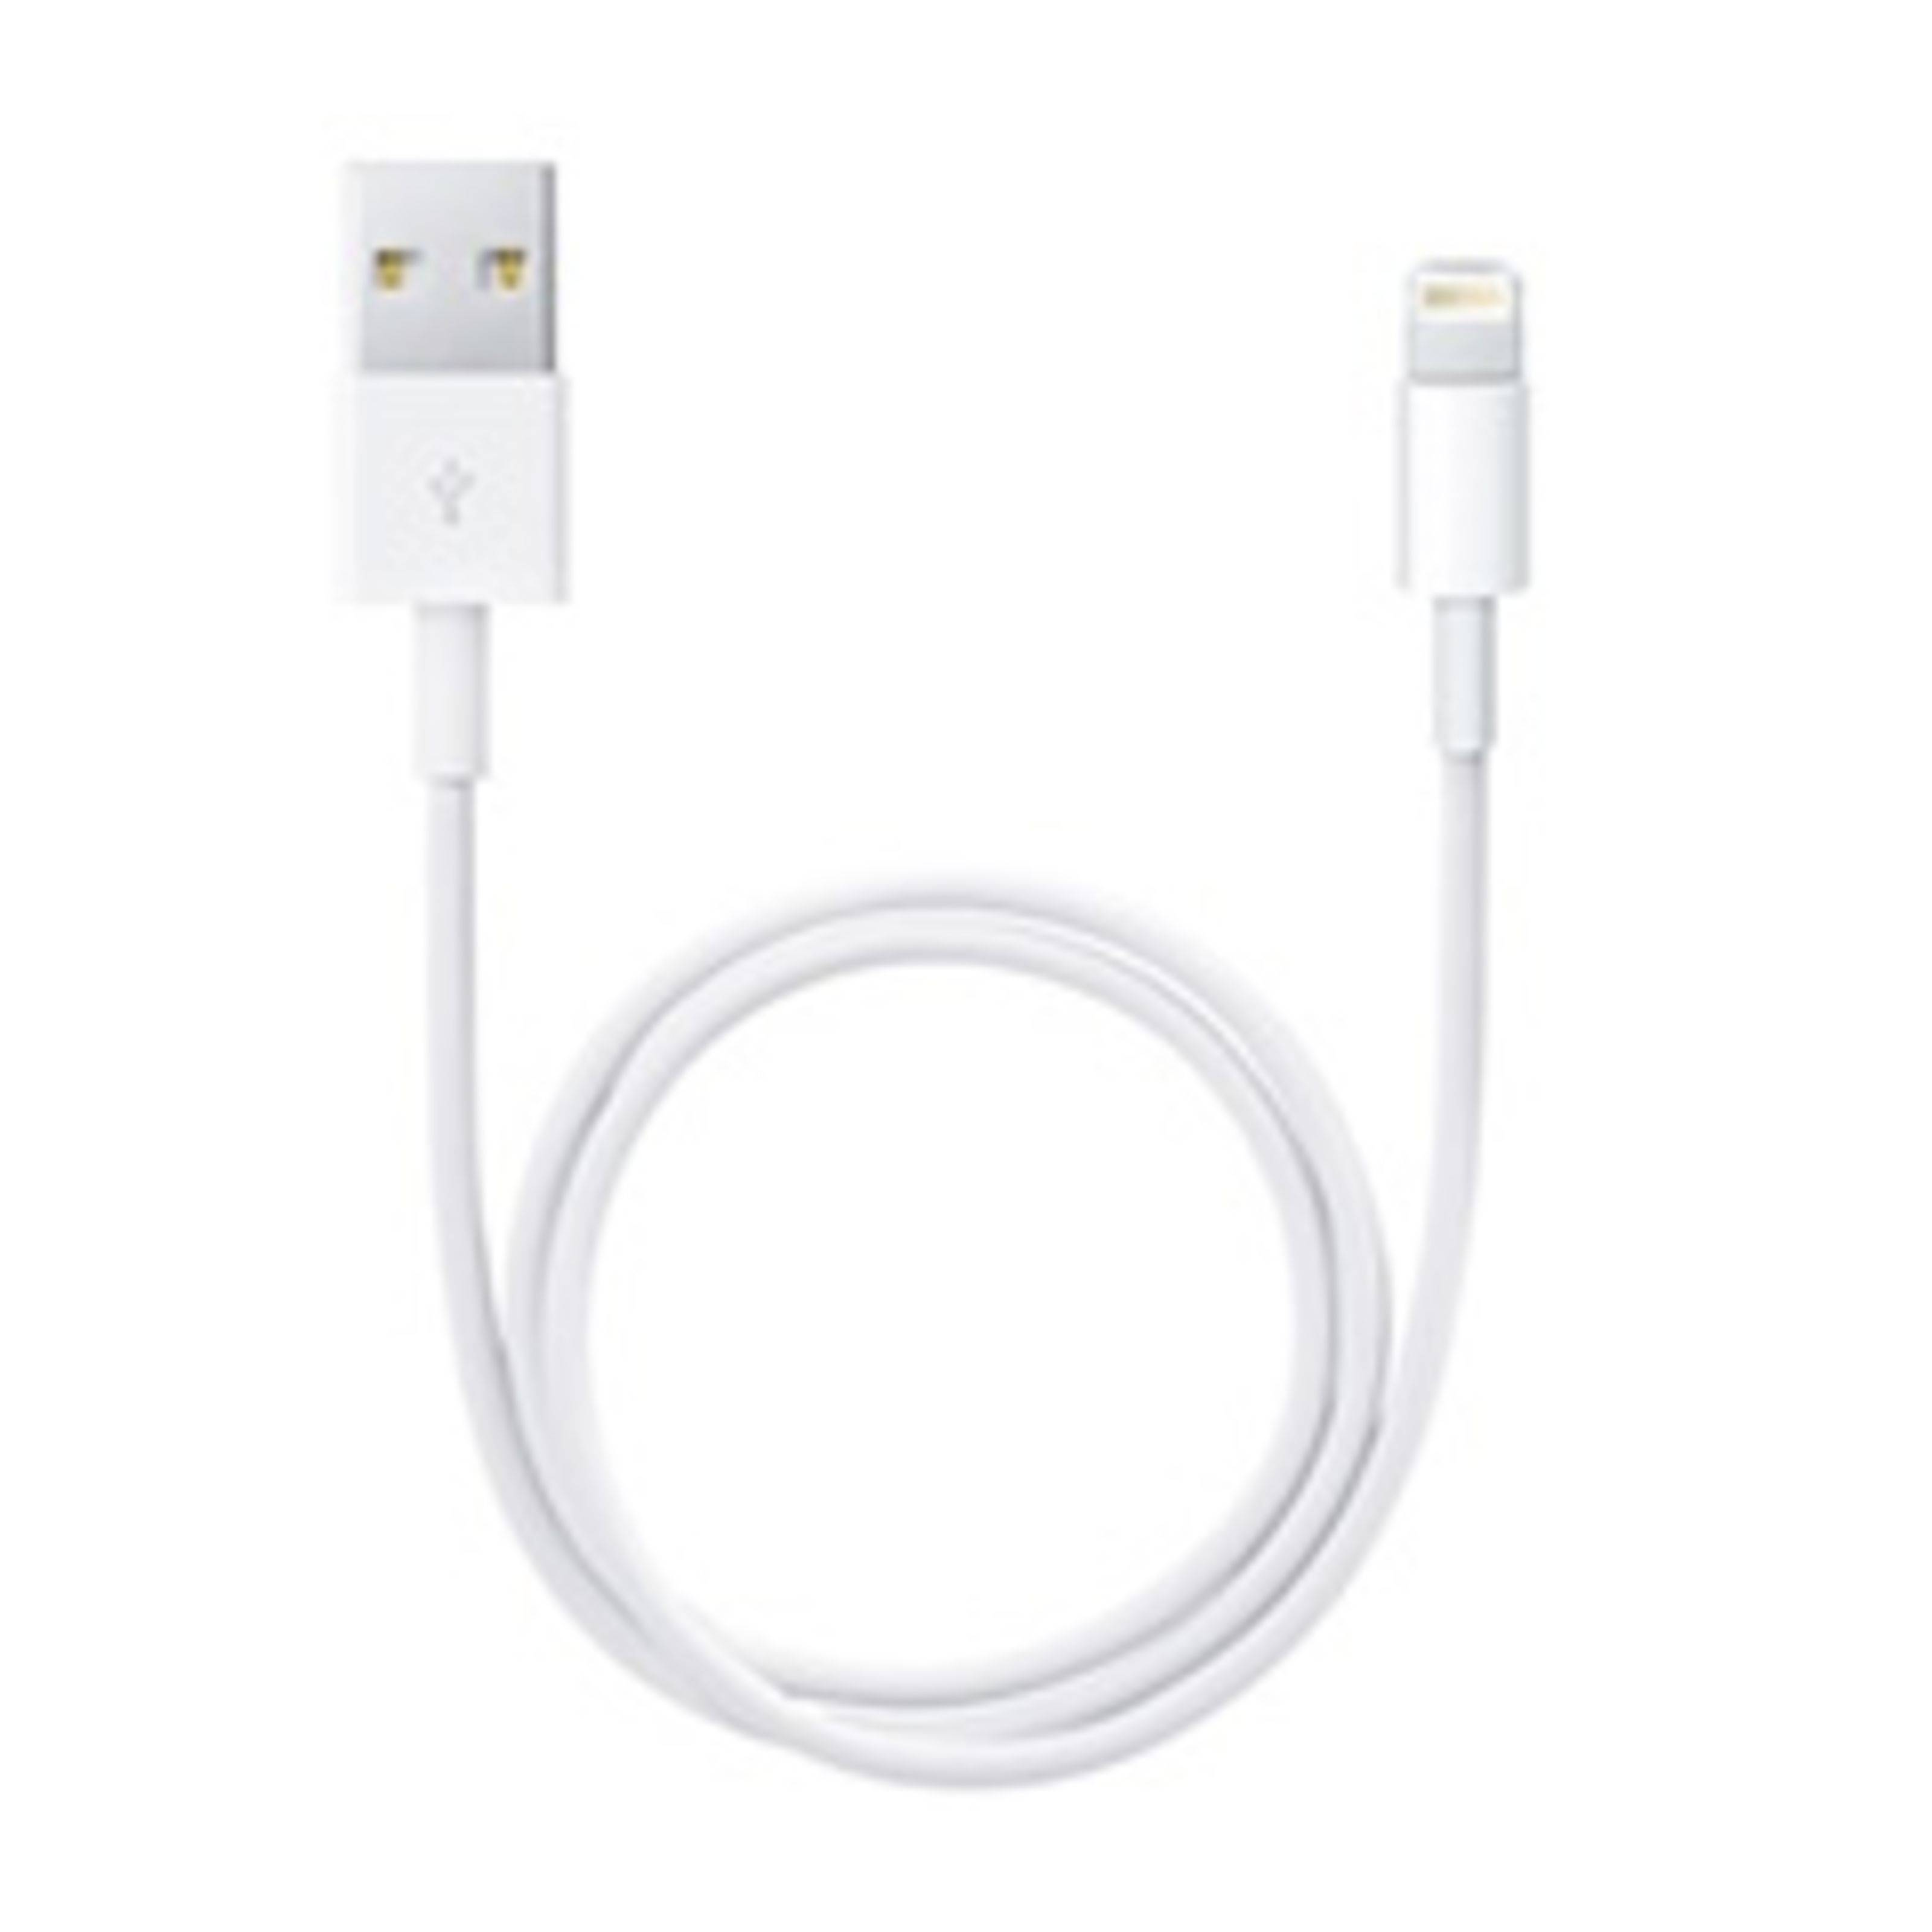 Apple Lightning a USB Cable 1m